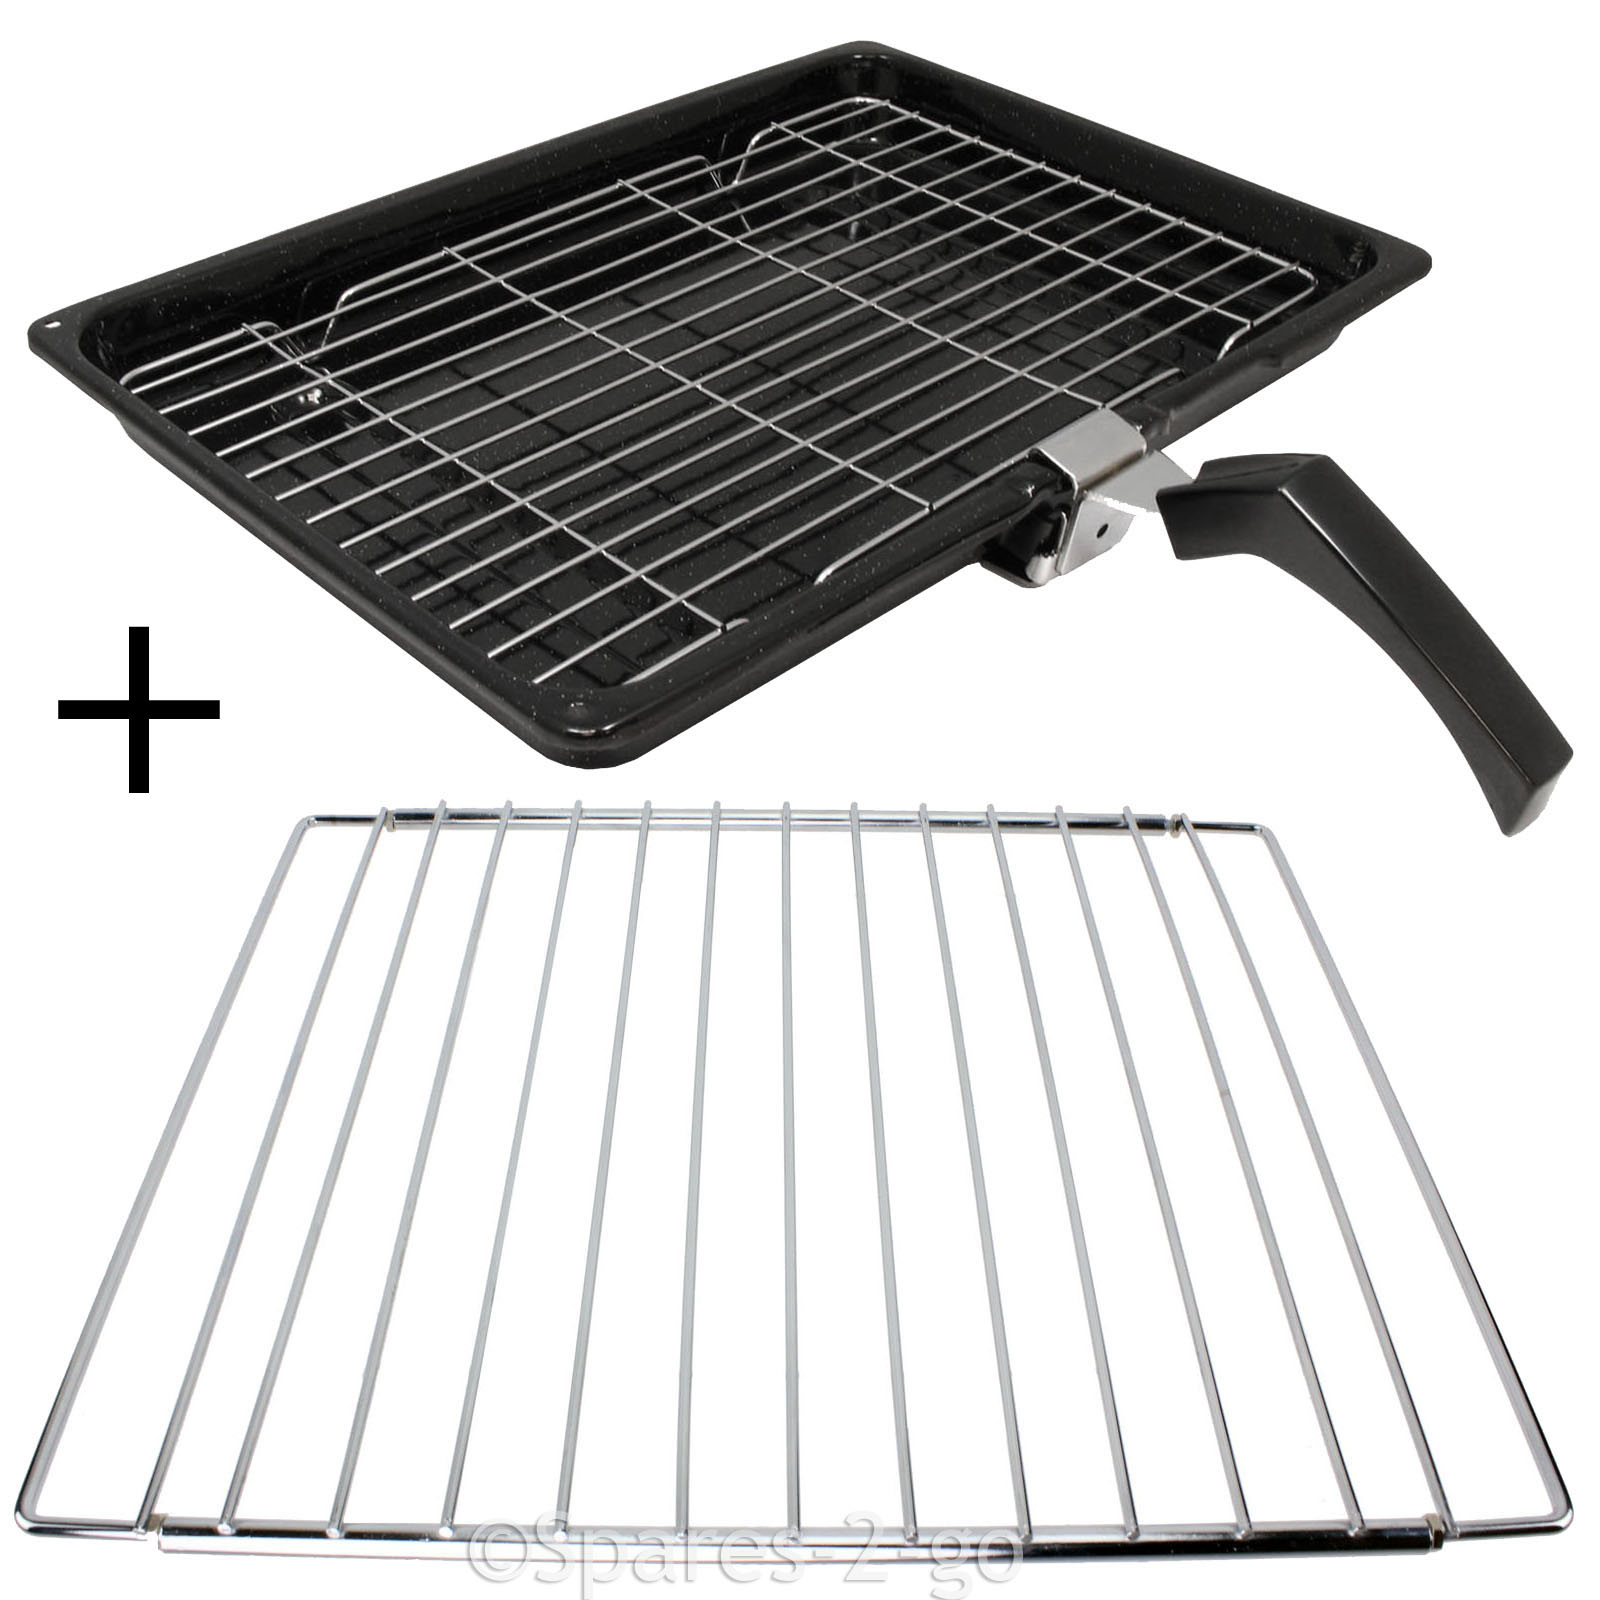 grill insert accessories range rack and lacanche cookers roasting tray